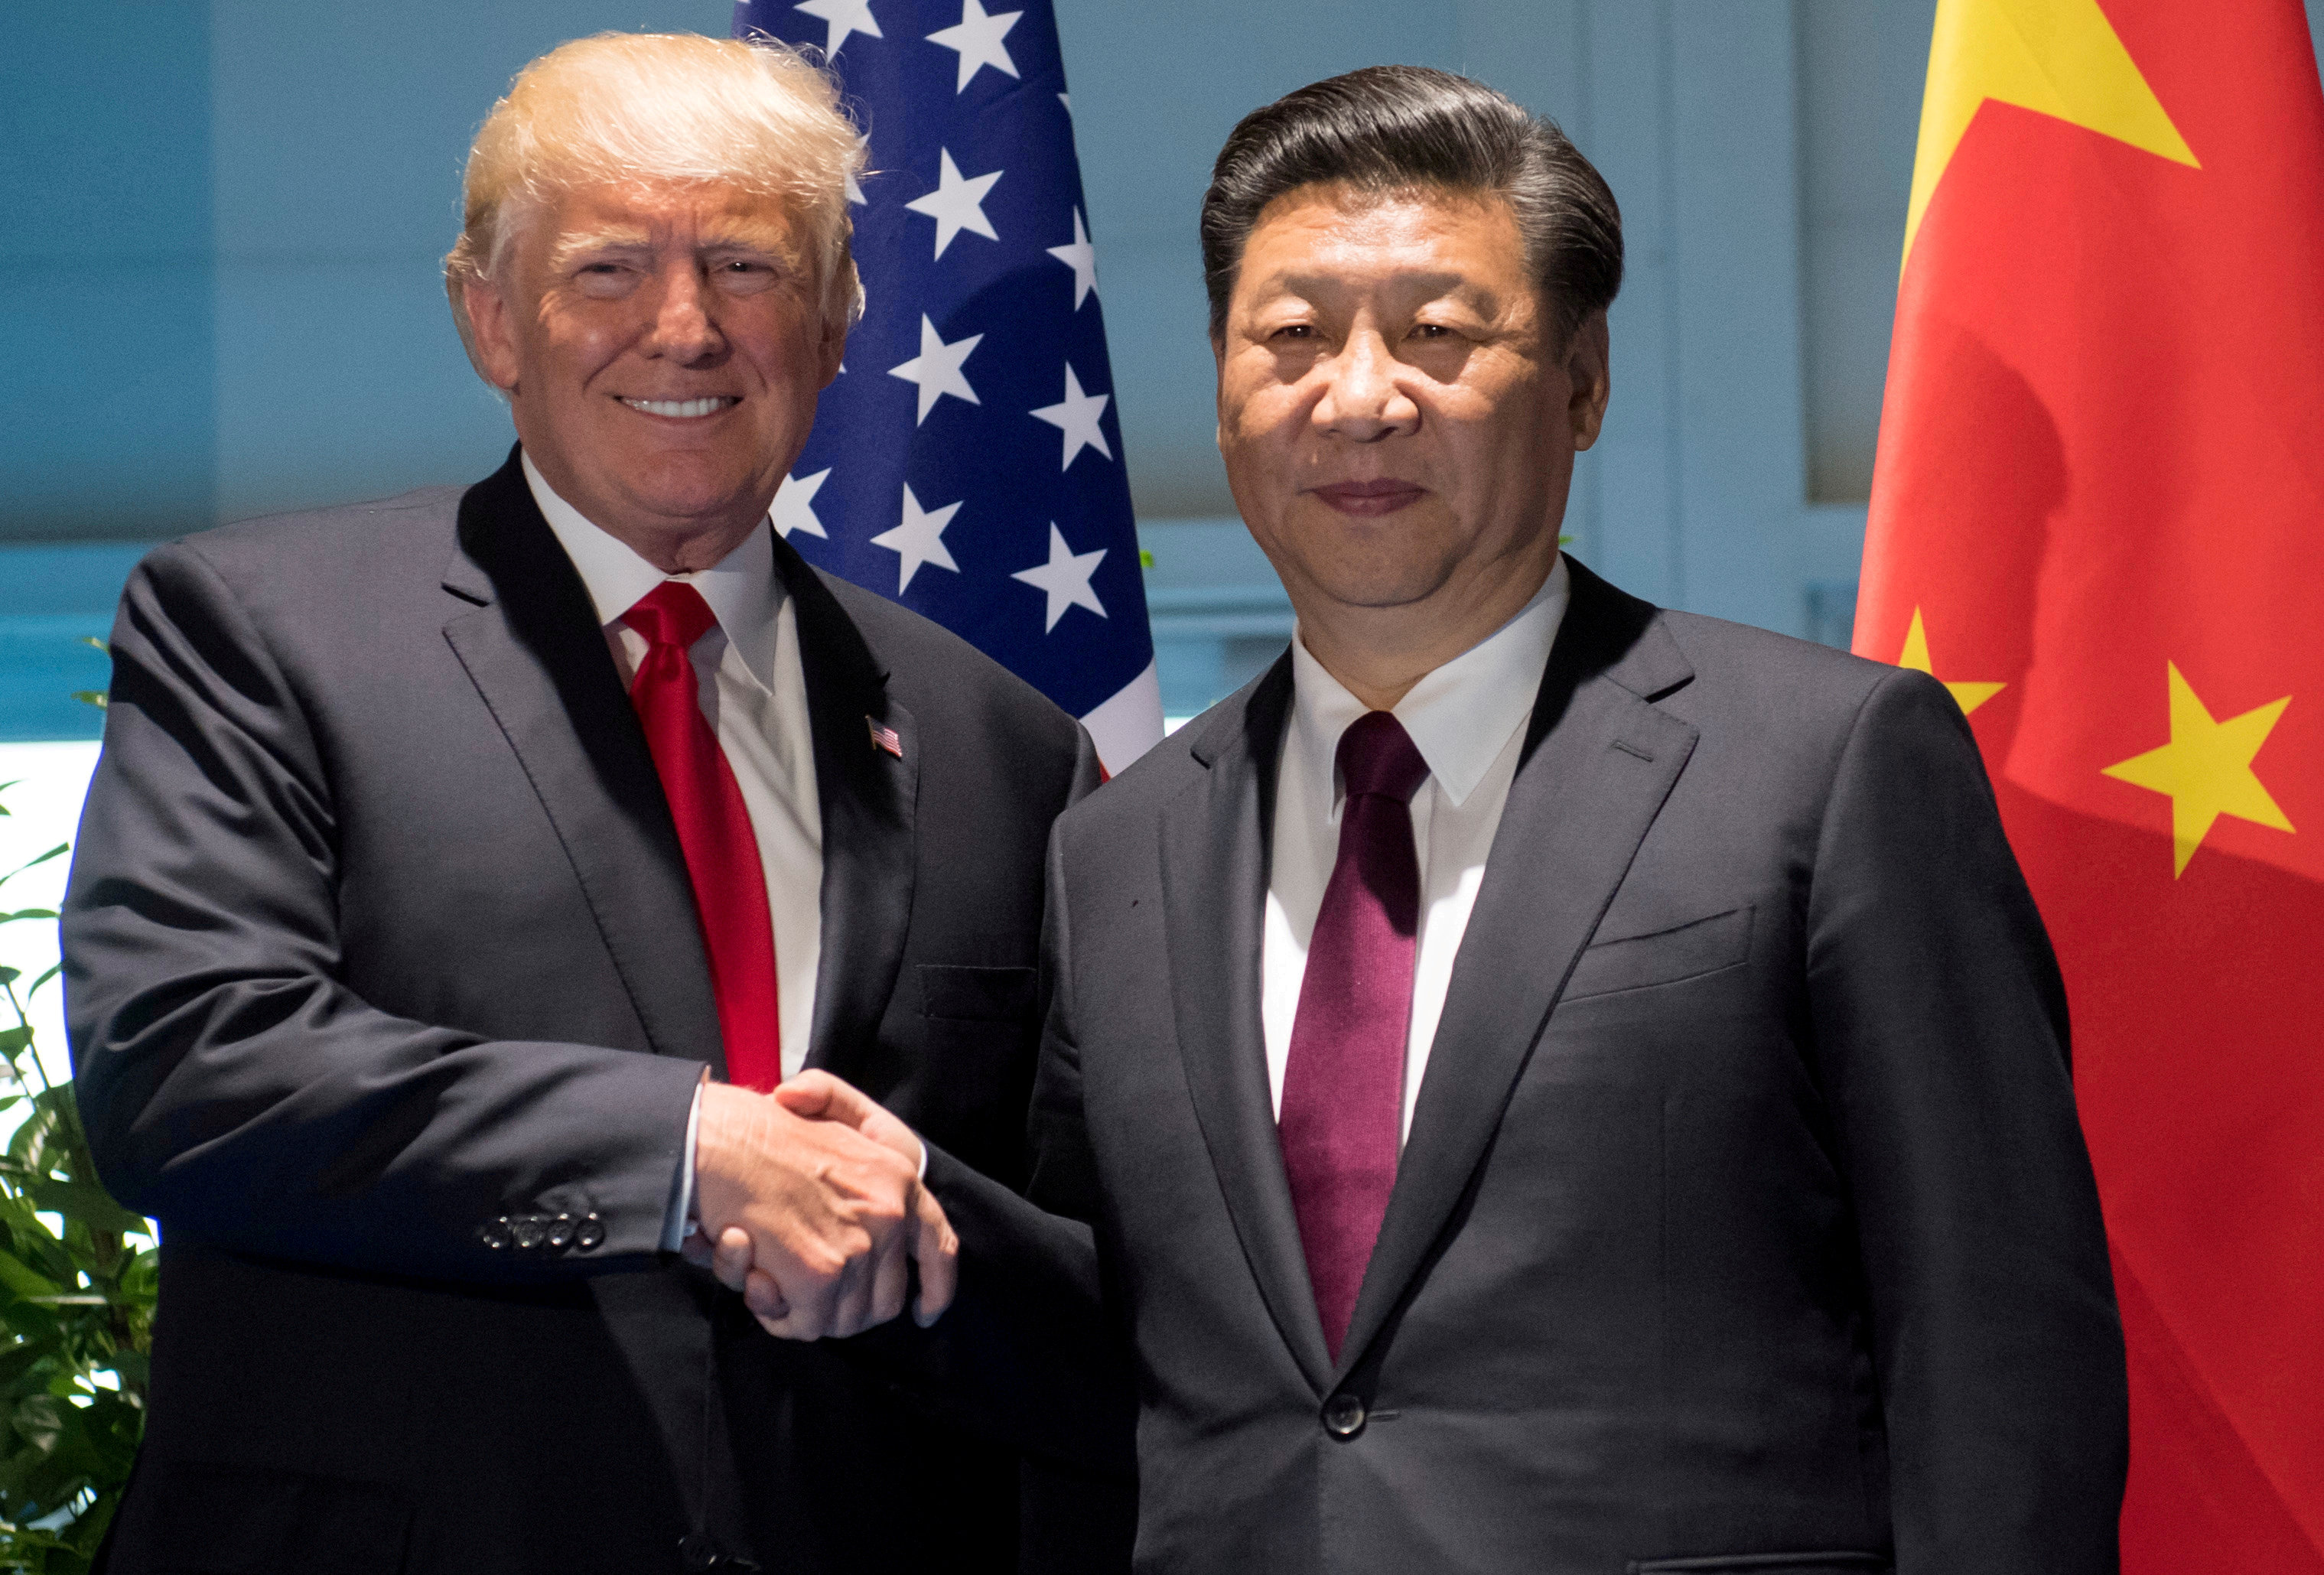 Xi looks to soothe Trump as U.S. pressures China